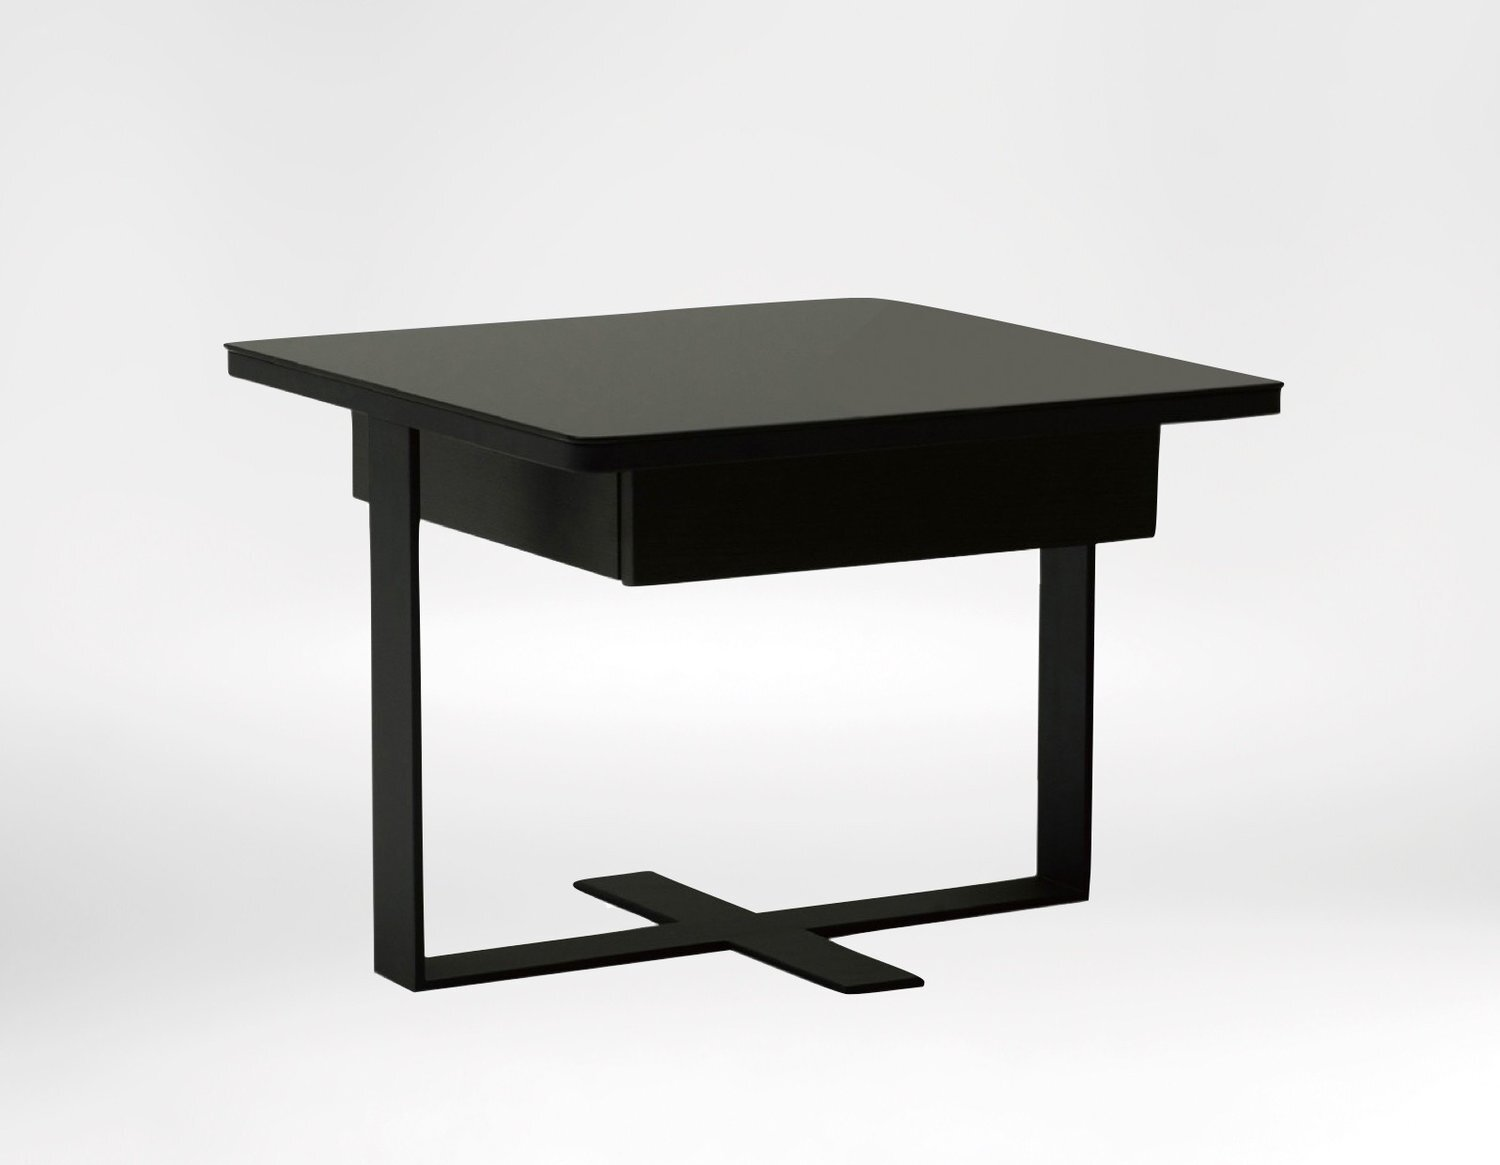 Mod Side Table - Featuring a unique platform and frame with a square black glass top.